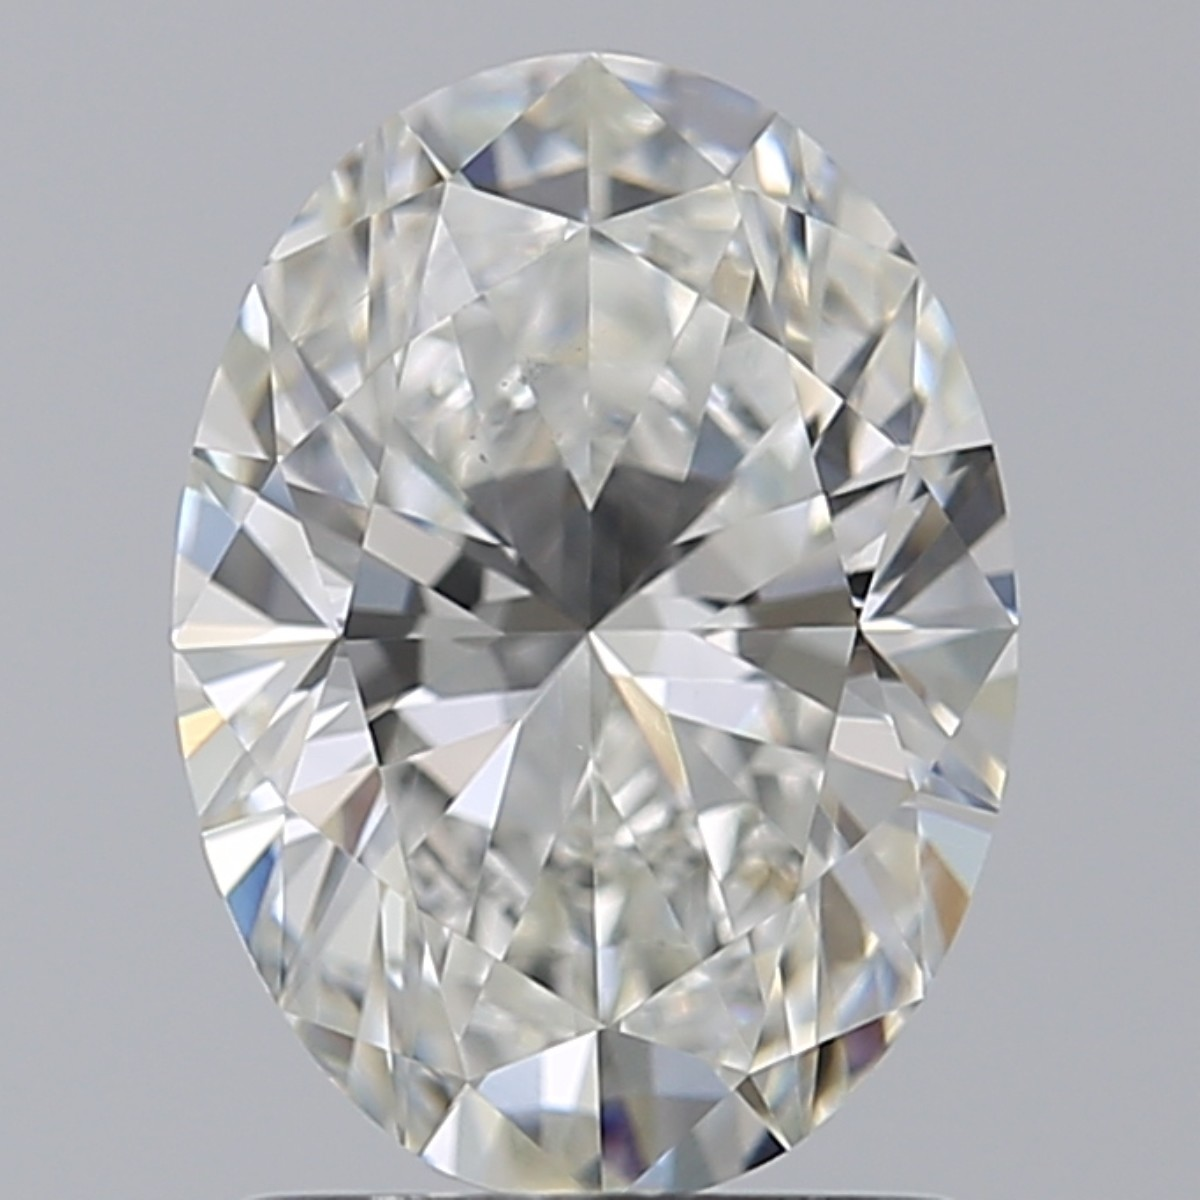 1.52 Carat Oval Diamond (G/VS2)